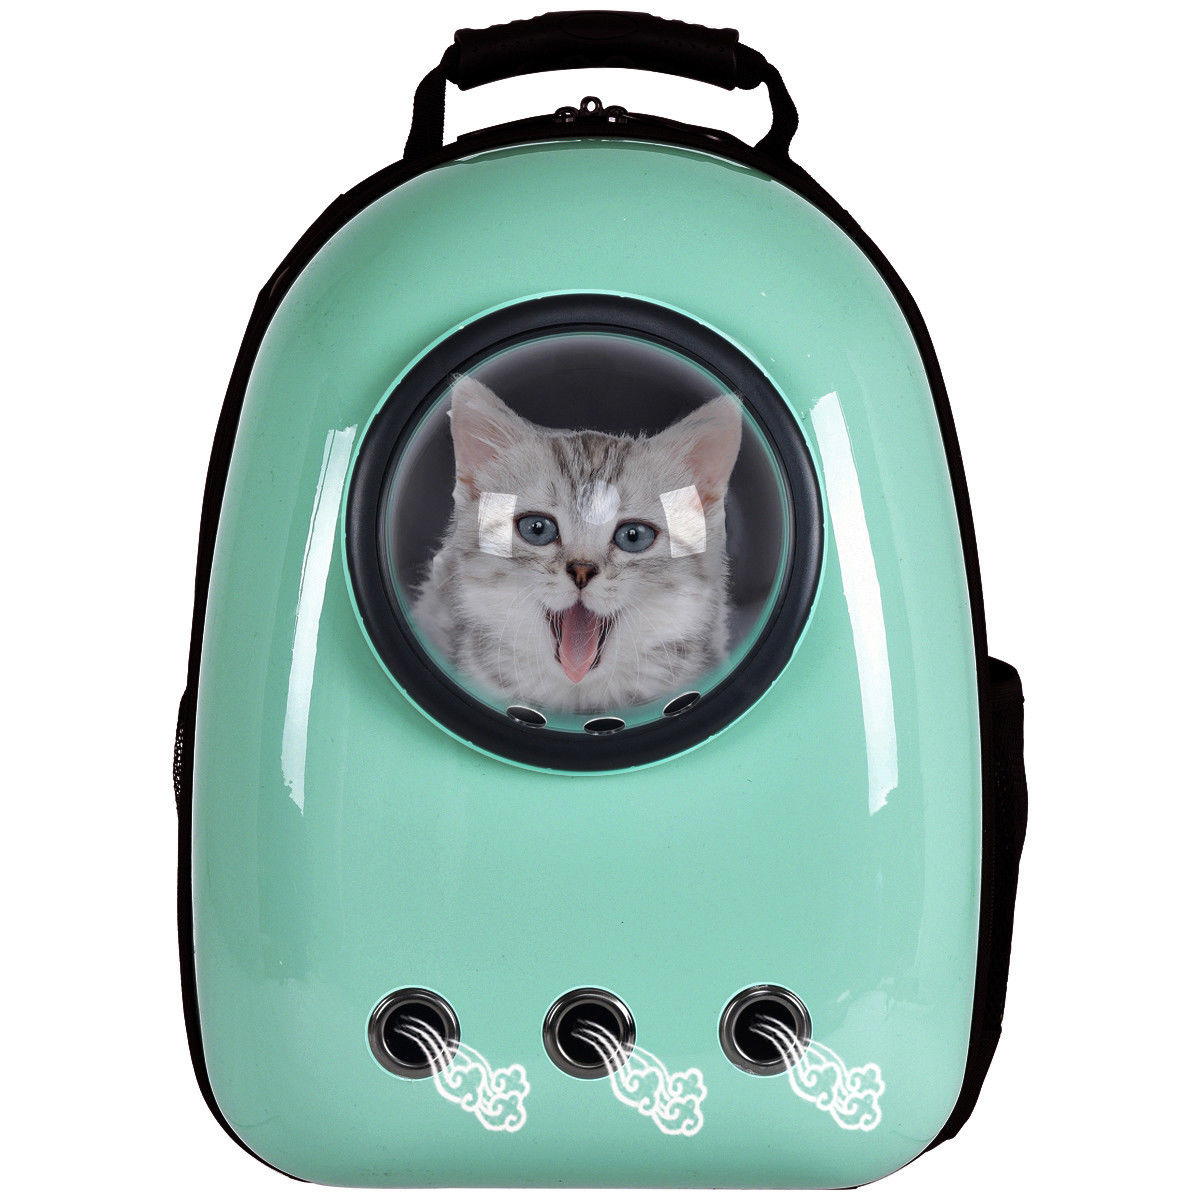 Costway Astronaut Pet Cat Dog Puppy Carrier Travel Bag Space Capsule Backpack Breathable